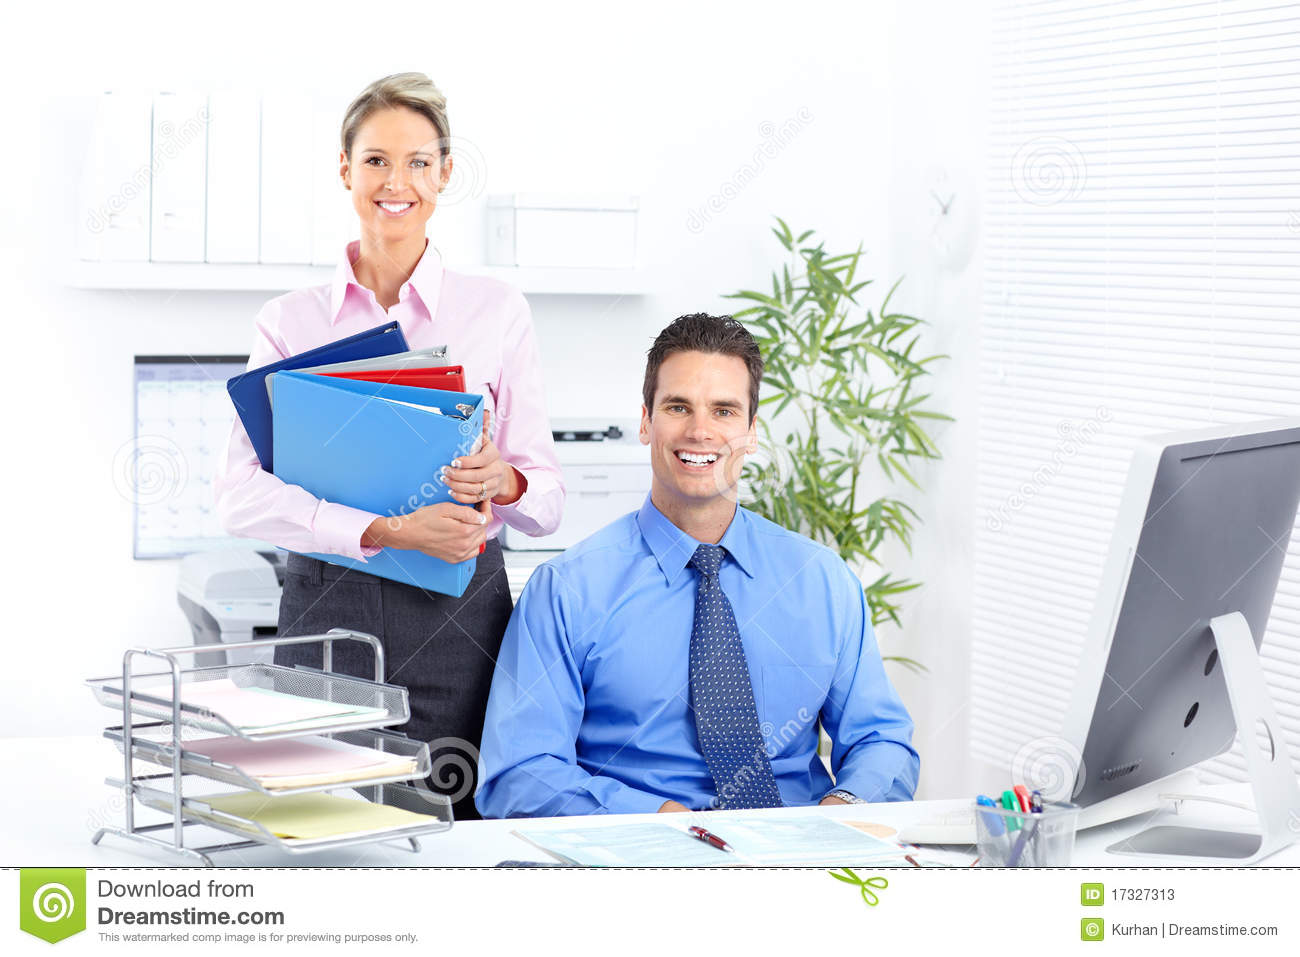 Business People Stock Photos - Image: 17327313